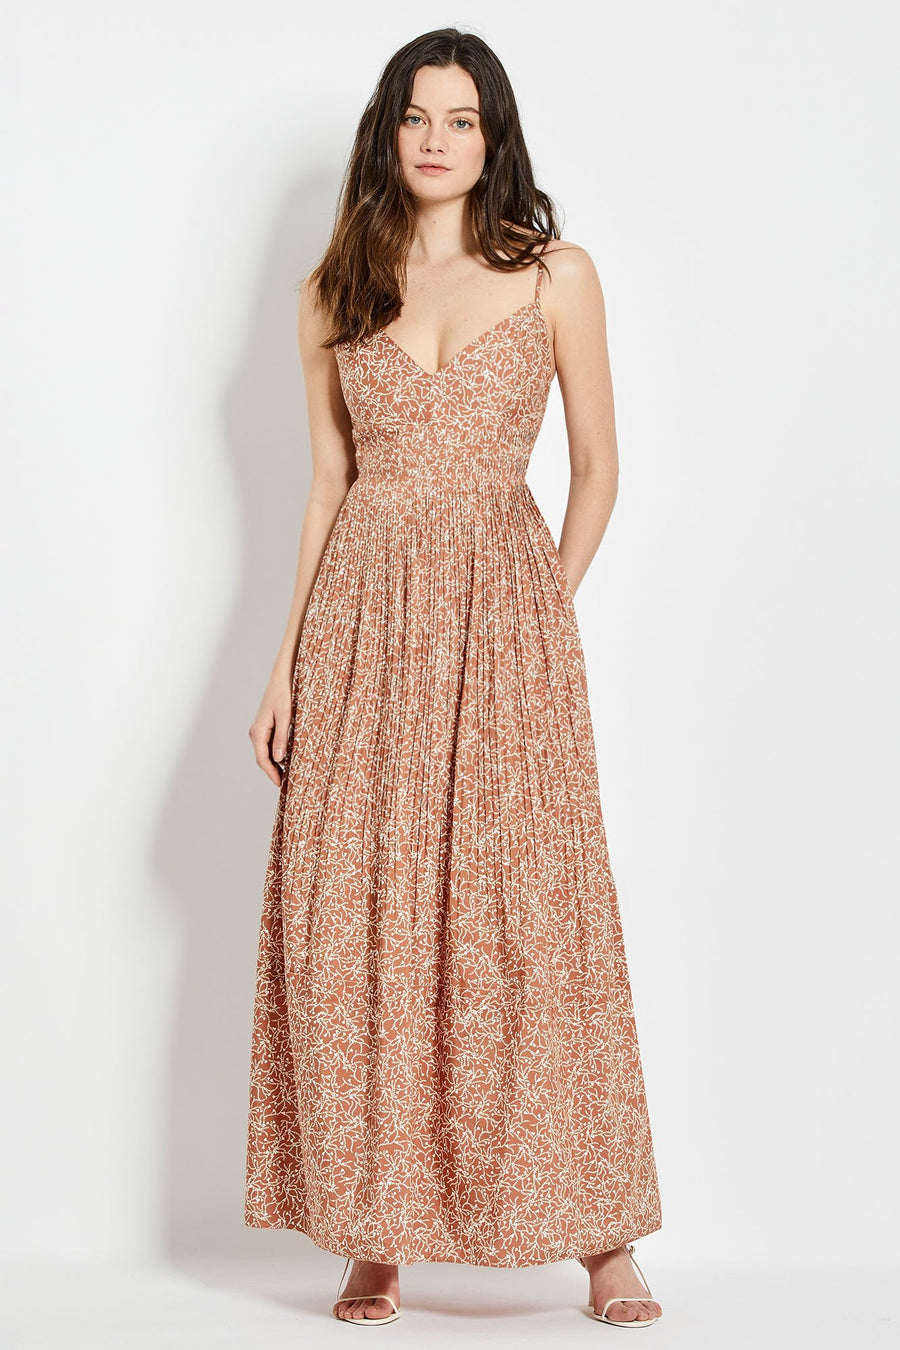 Susan Dress - Mocha Thyme Print